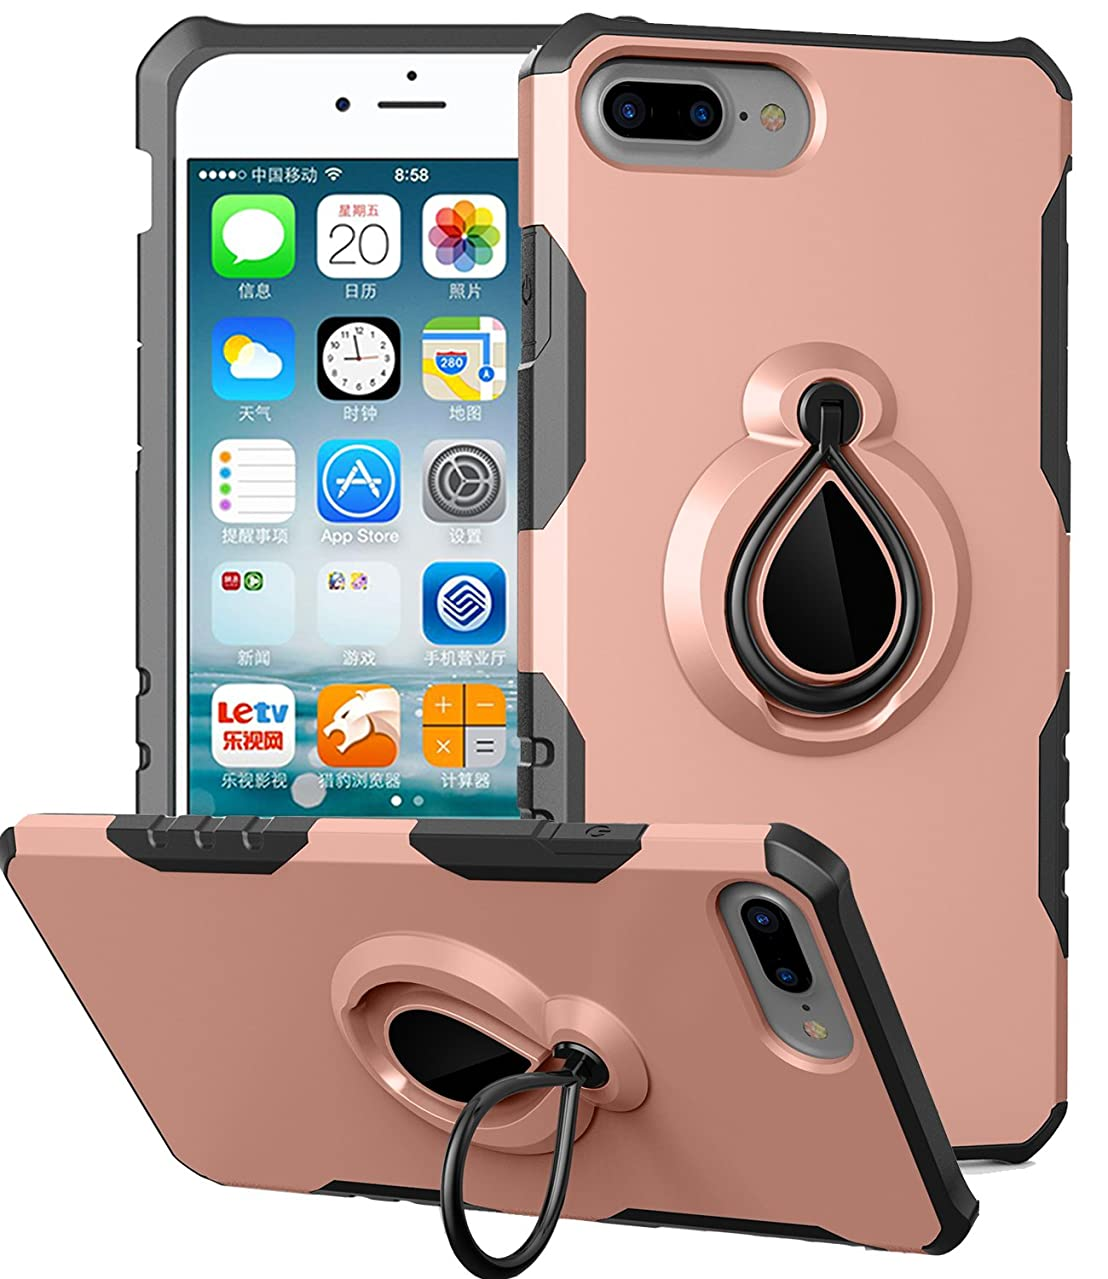 XRPow iPhone 7 Plus Case, Dual Layer Defender Armor Cover Ring Holder ShockProof PC and Soft TPU with Kickstand Stand Protective Case for iPhone 7 Plus 5.5inch (Rose Gold)